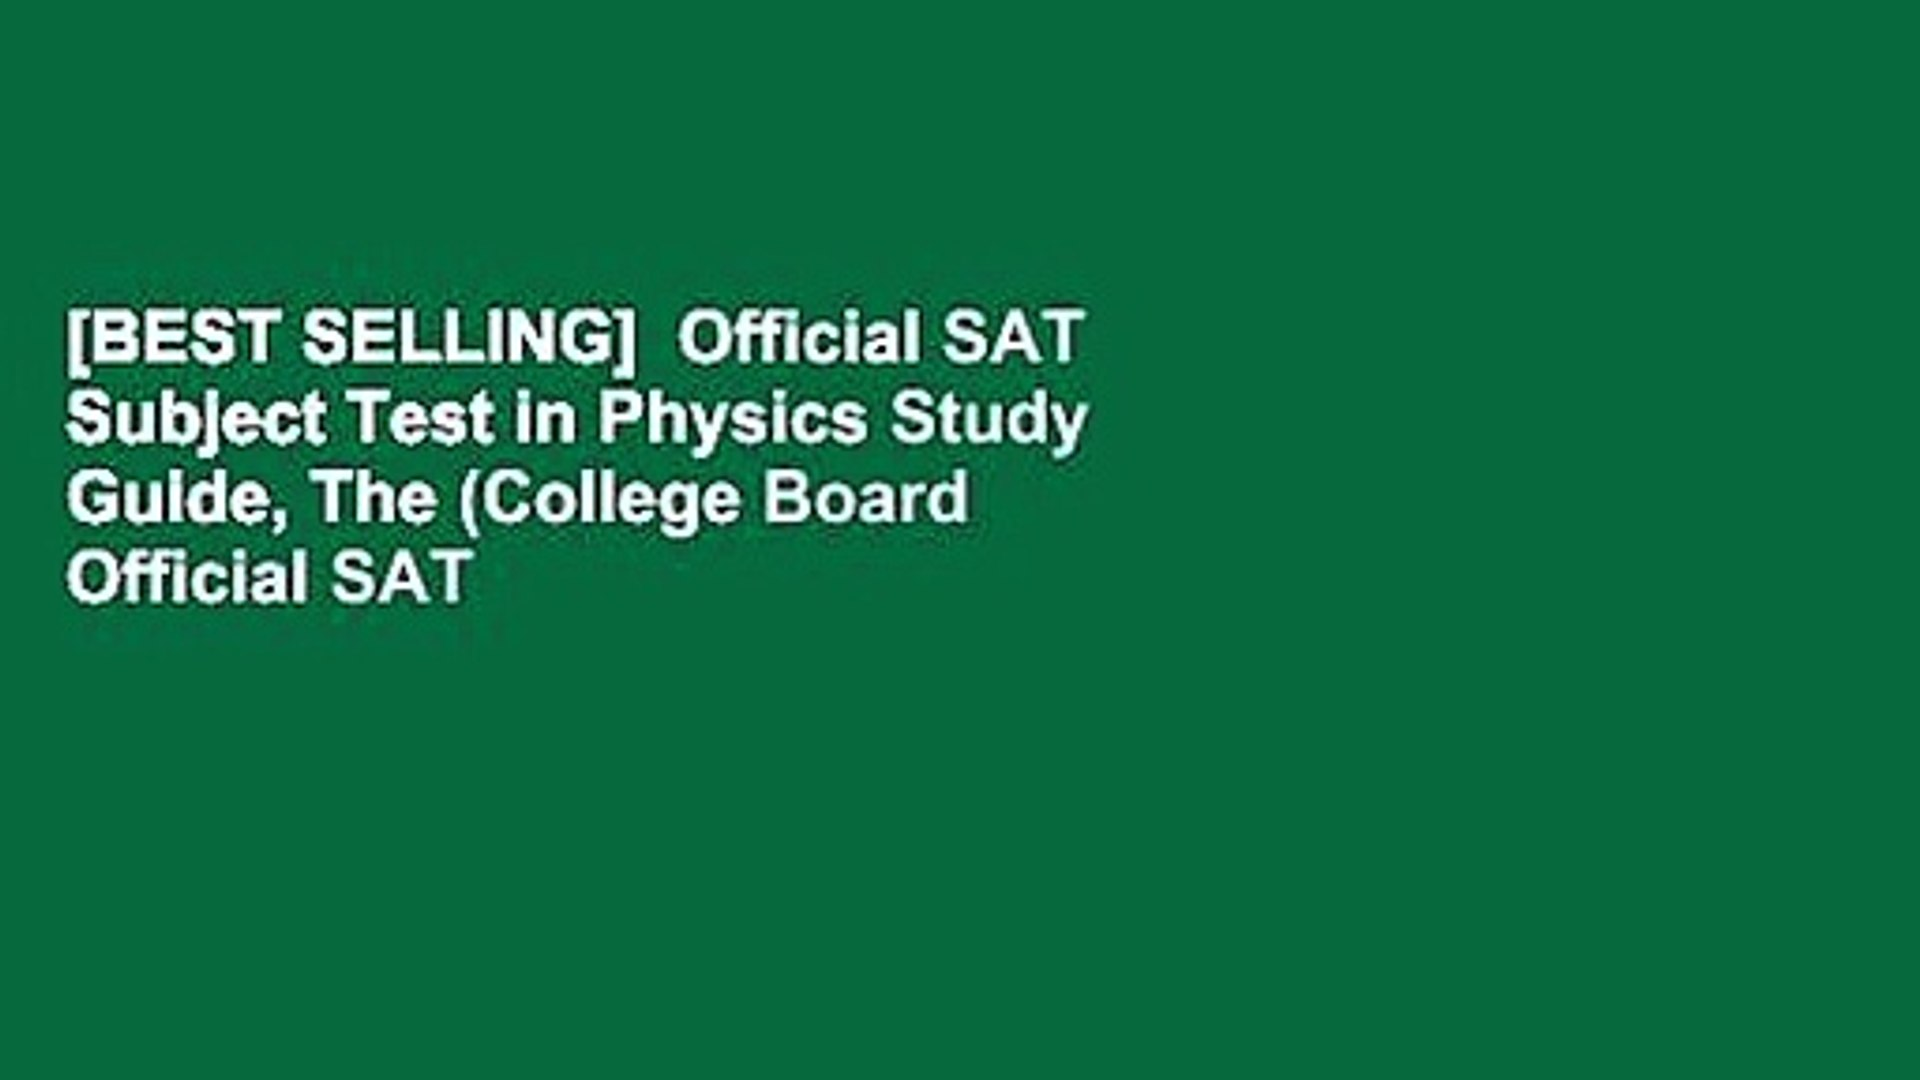 [BEST SELLING] Official SAT Subject Test in Physics Study Guide, The  (College Board Official SAT